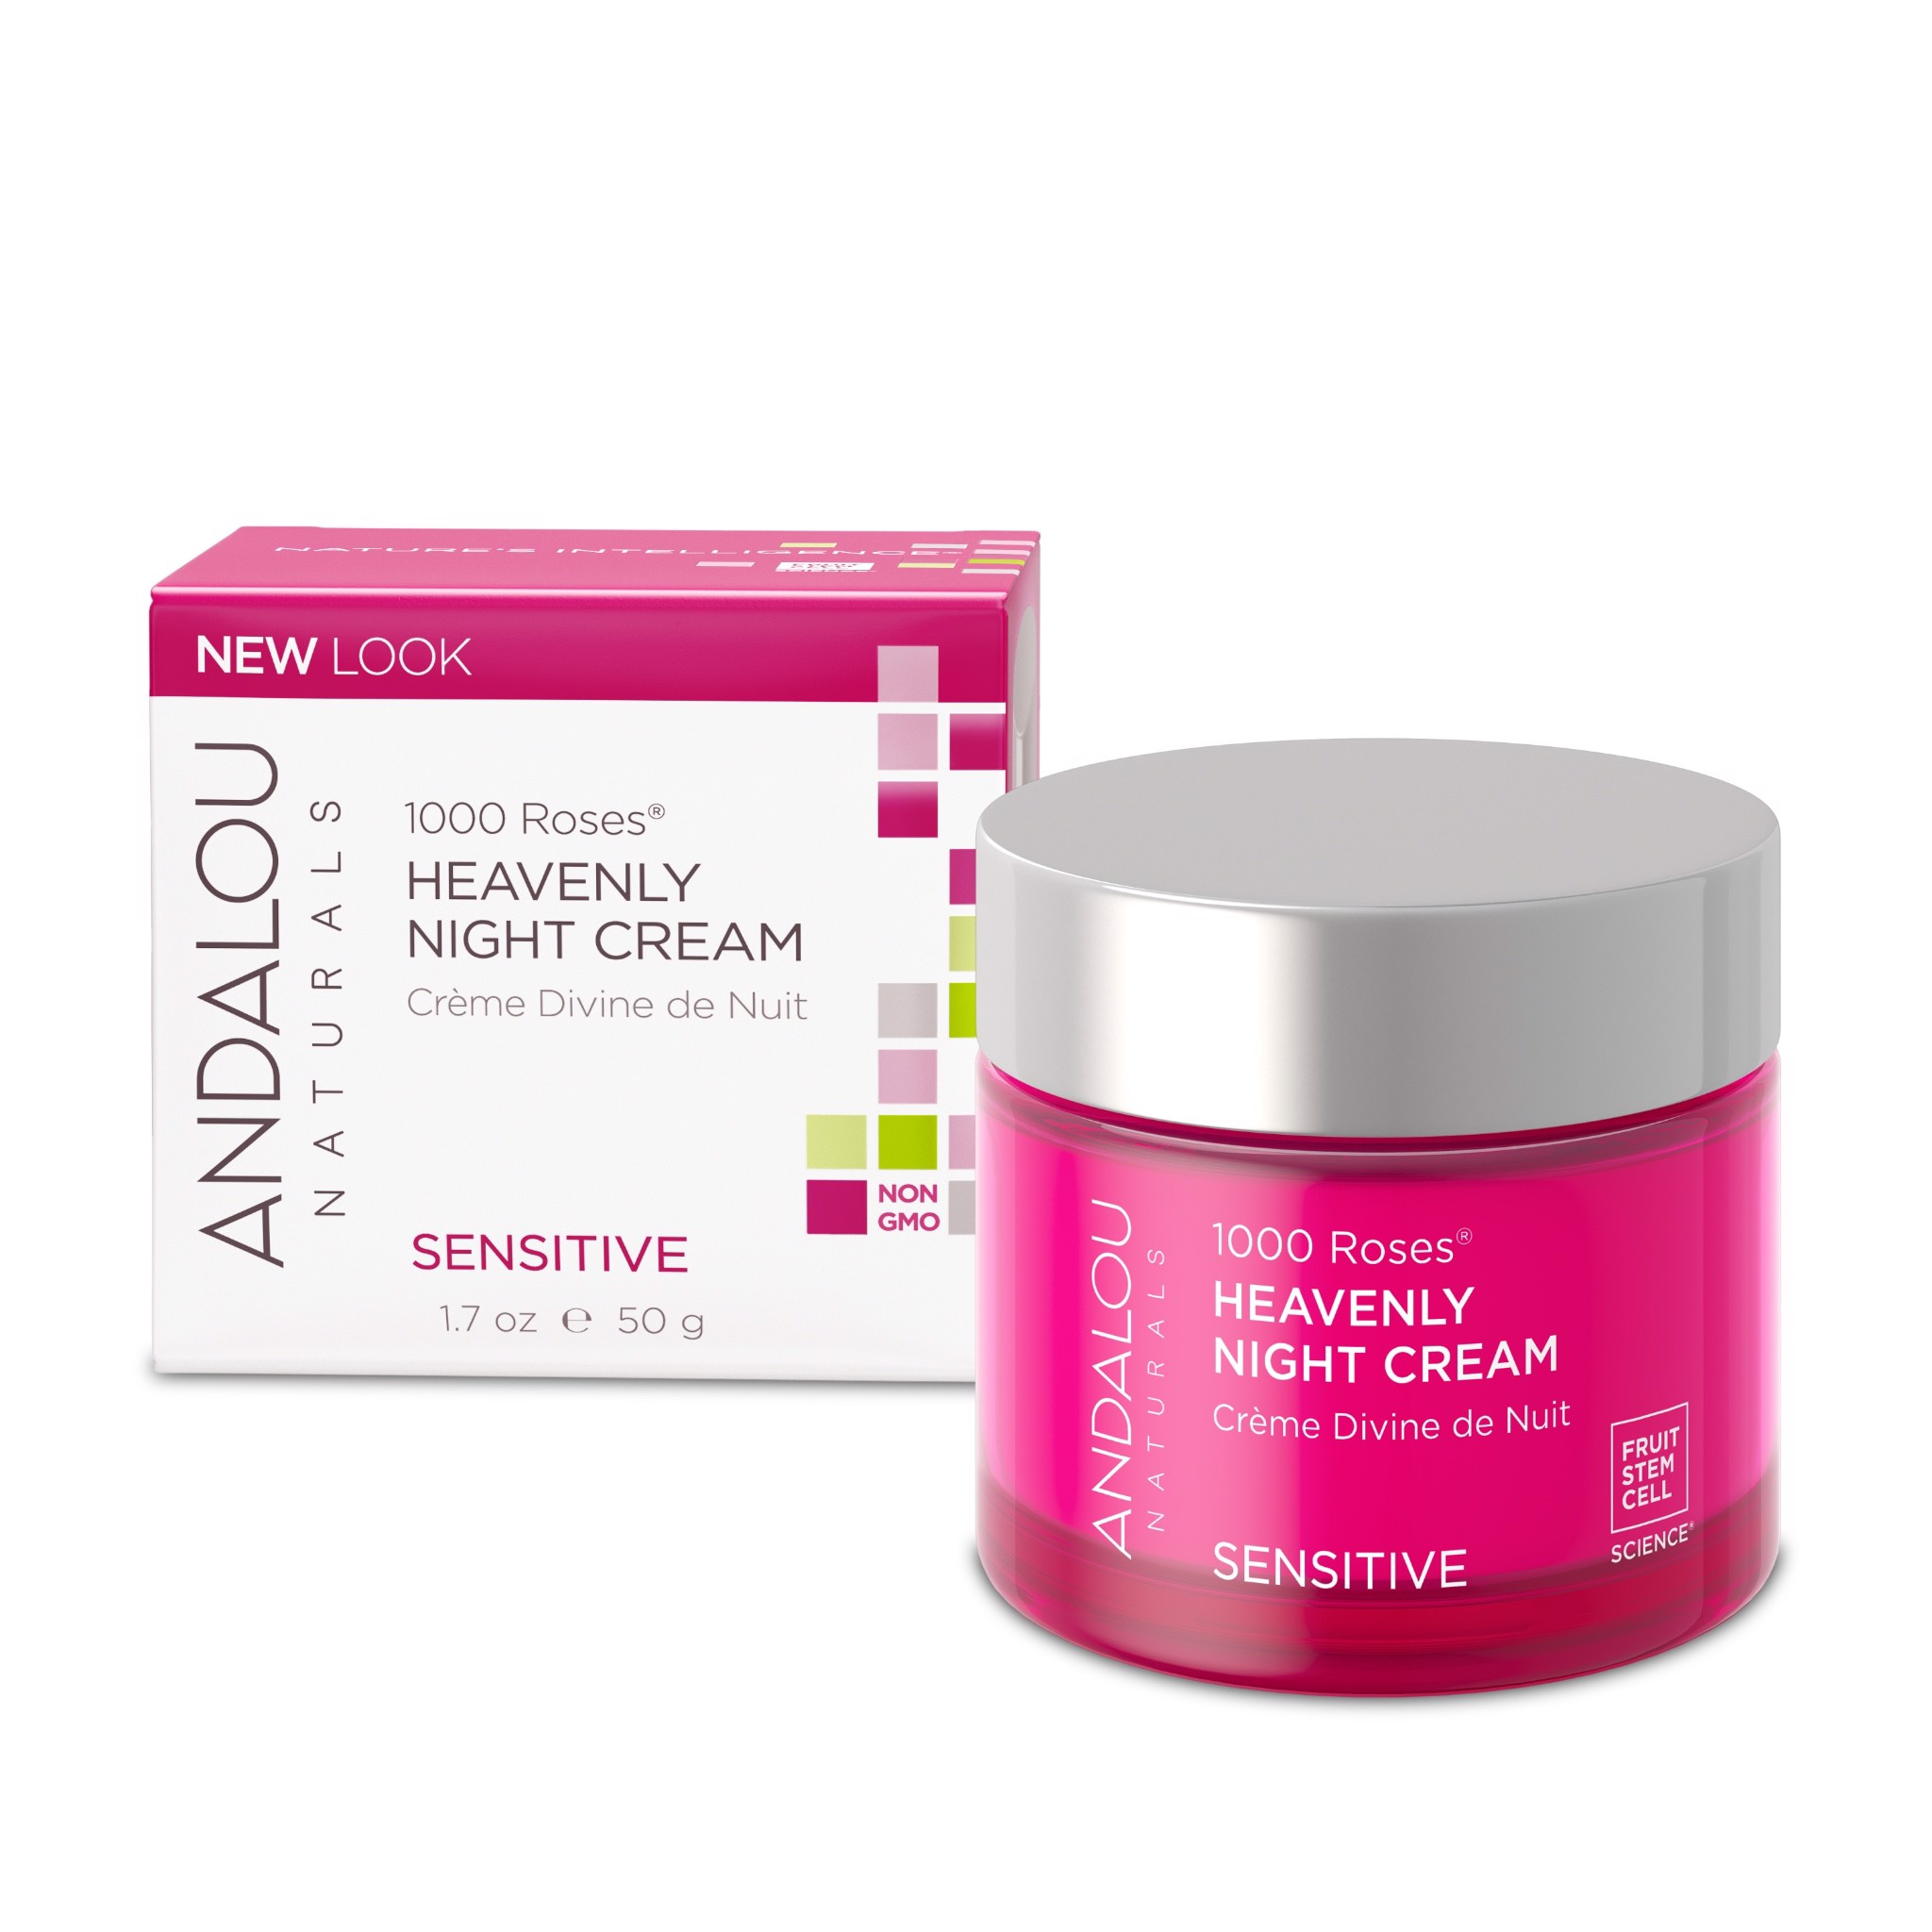 Kem dưỡng da ban đêm 1000 Roses™ Heavenly Night Cream Andalou